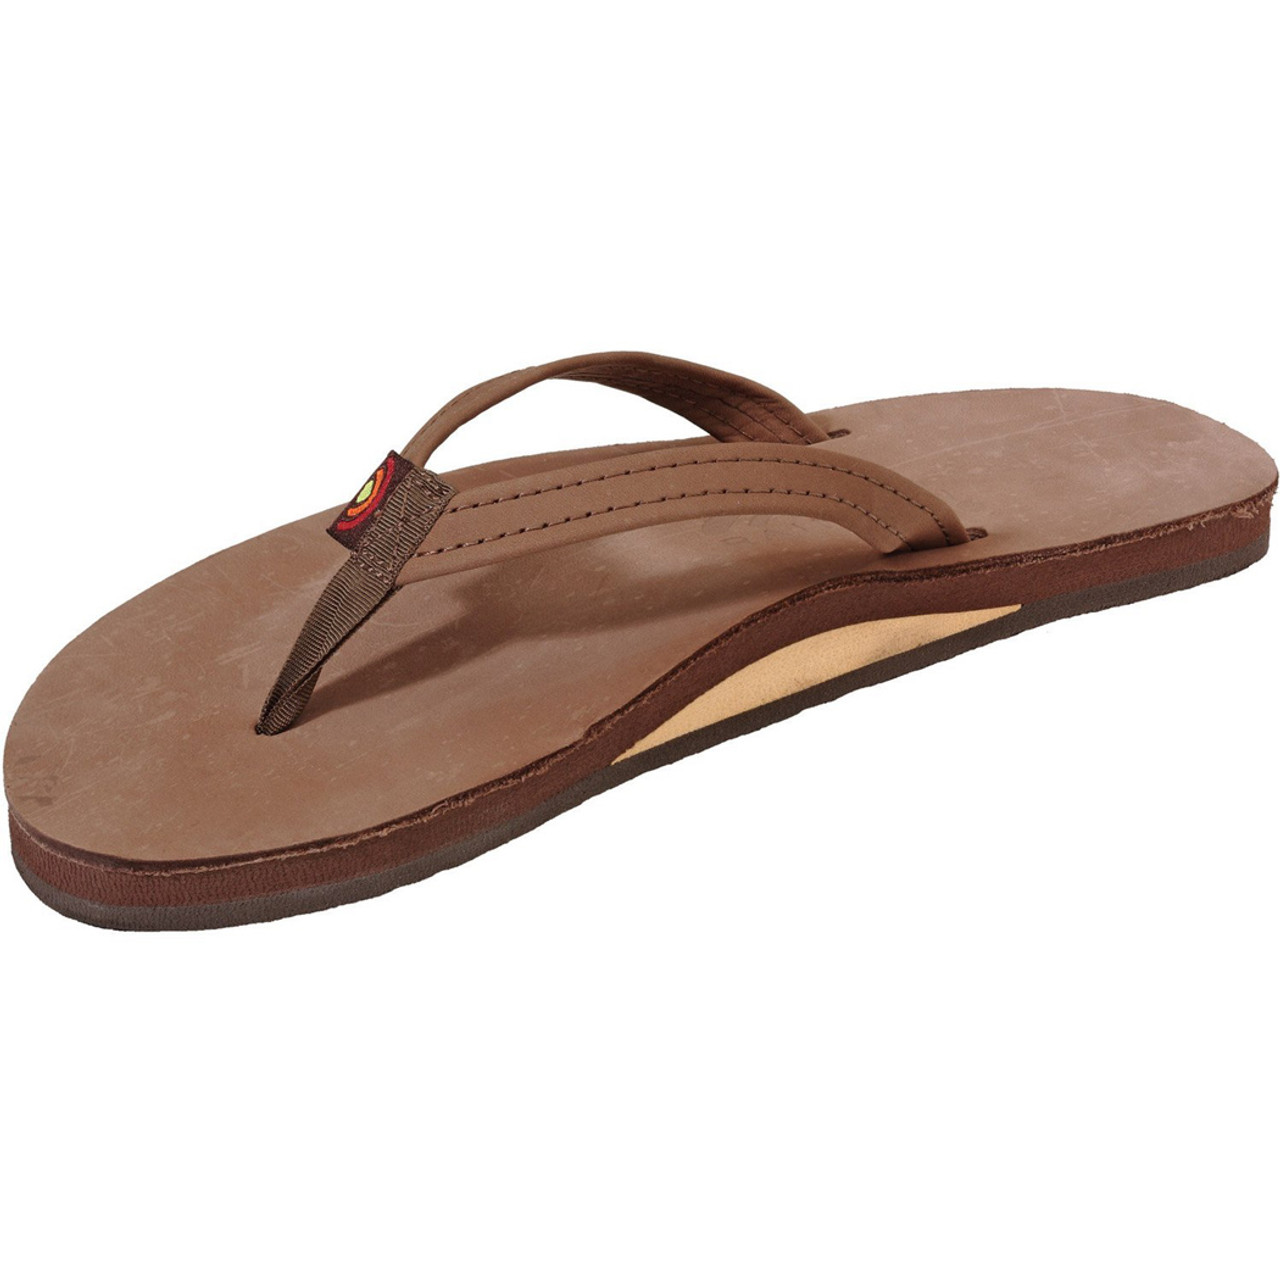 96d9da8039d9 Rainbow Women s Flip Flop - Premier Narrow - Brown - Surf and Dirt